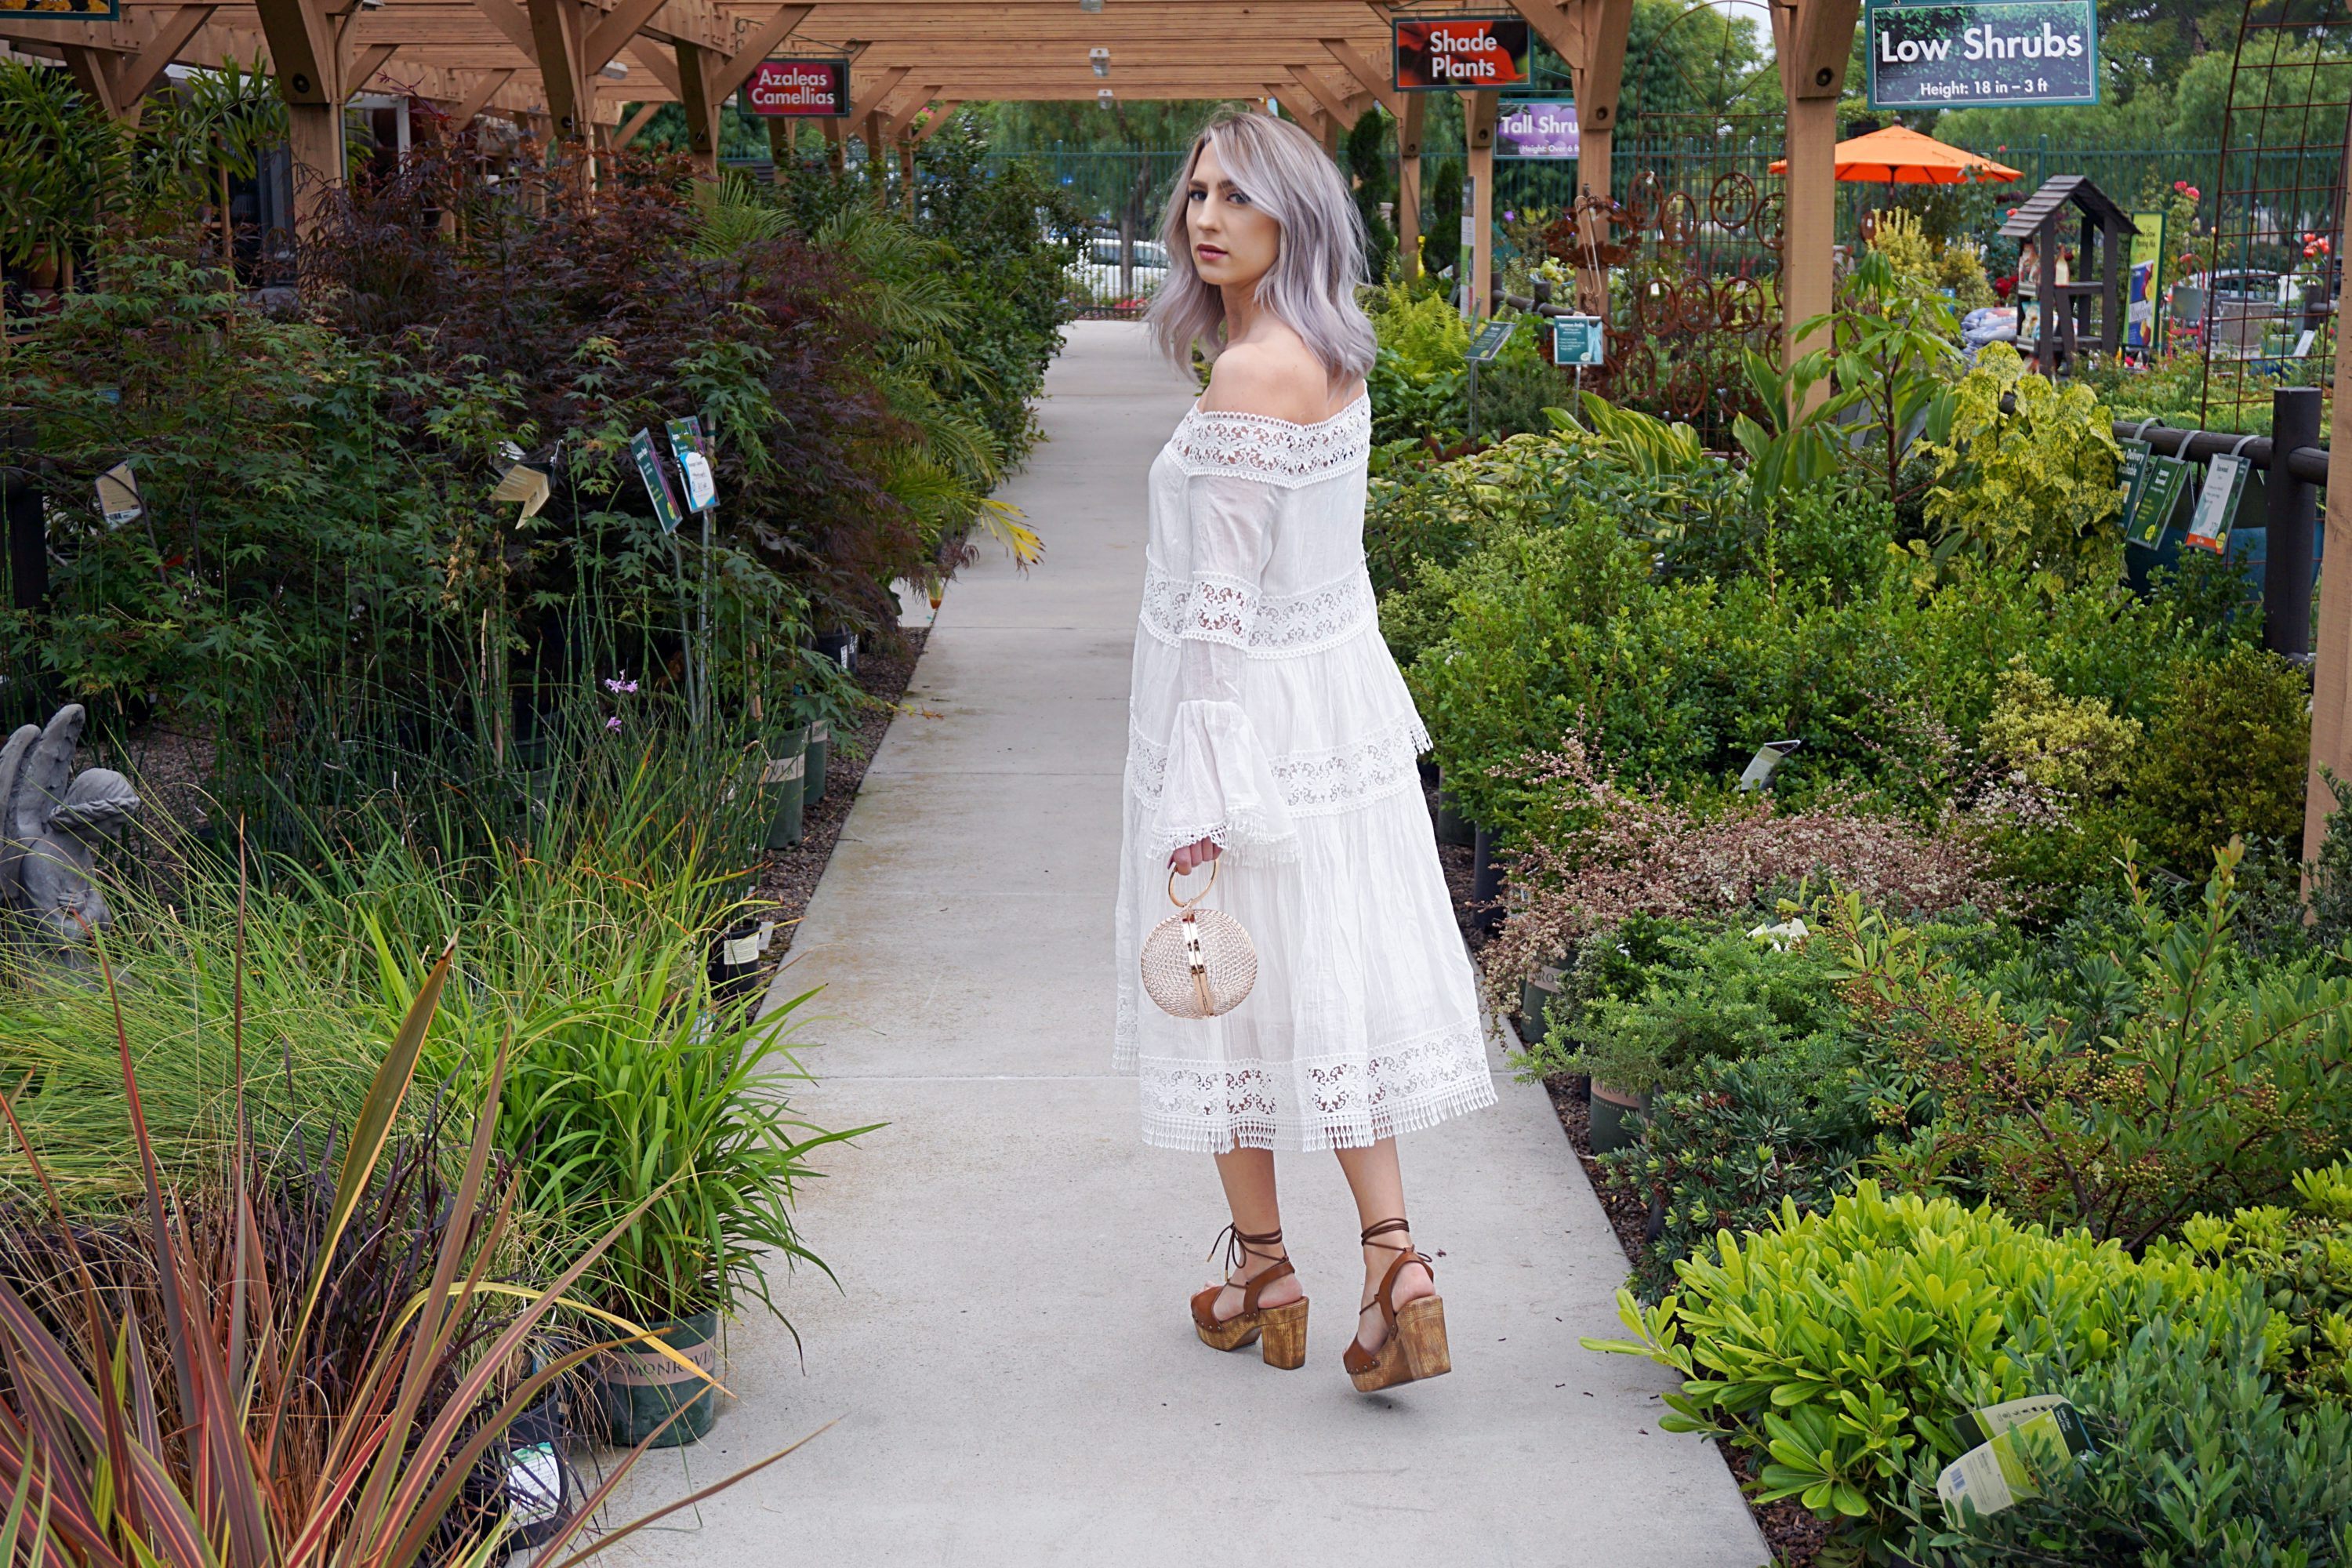 White Dresses & Platform Shoes | Until The Very Trend